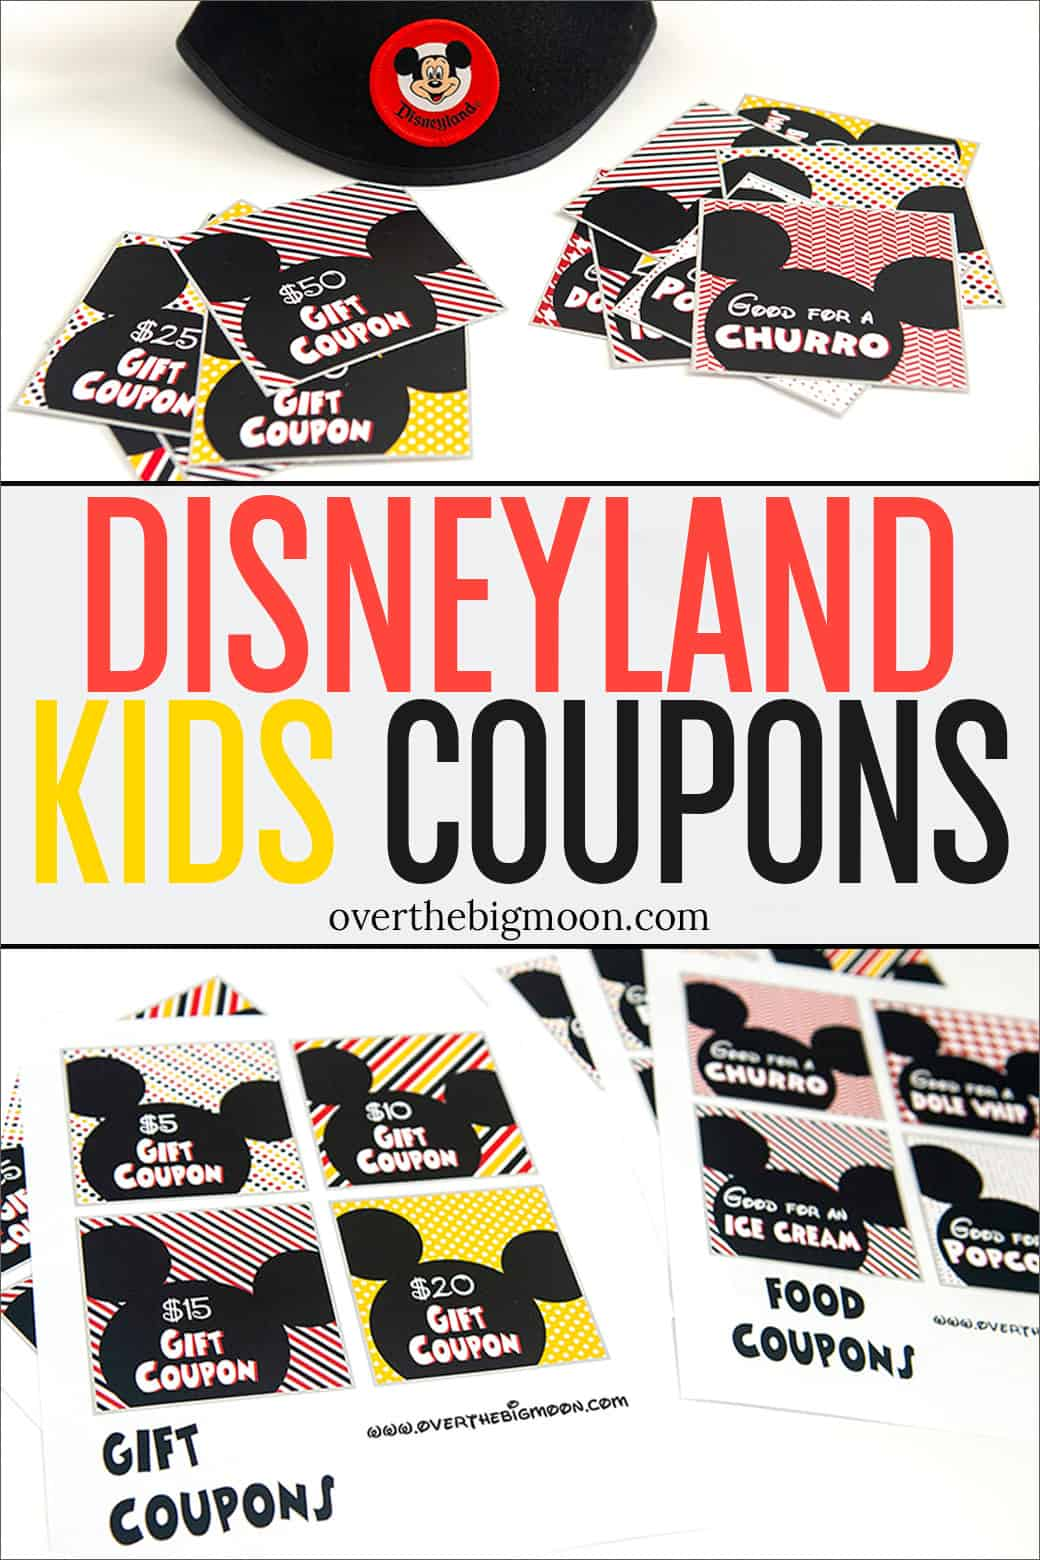 photo relating to Disneyland Printable Coupons called Disneyland Coupon Printables - More than the Significant Moon